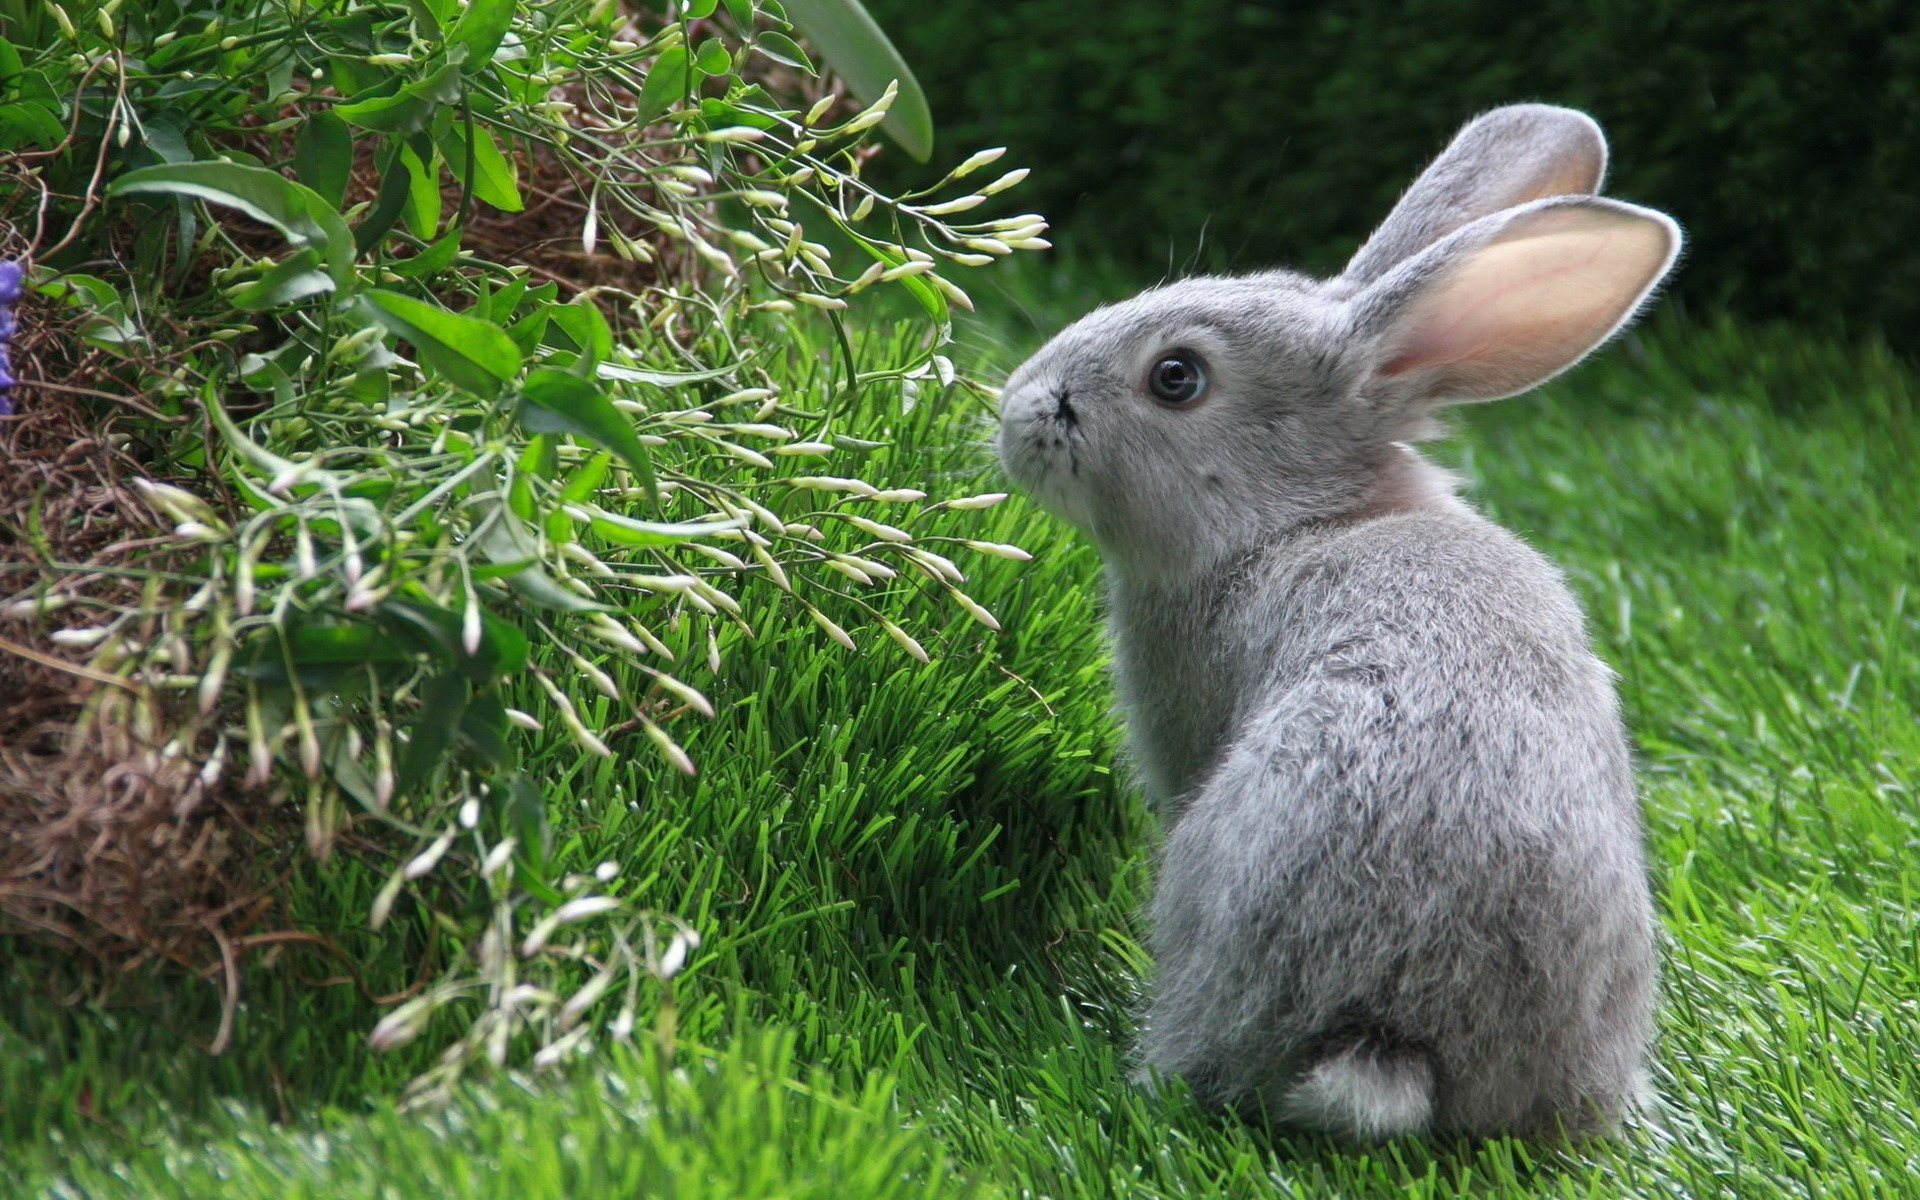 Image: Rabbit, grass, green, grey